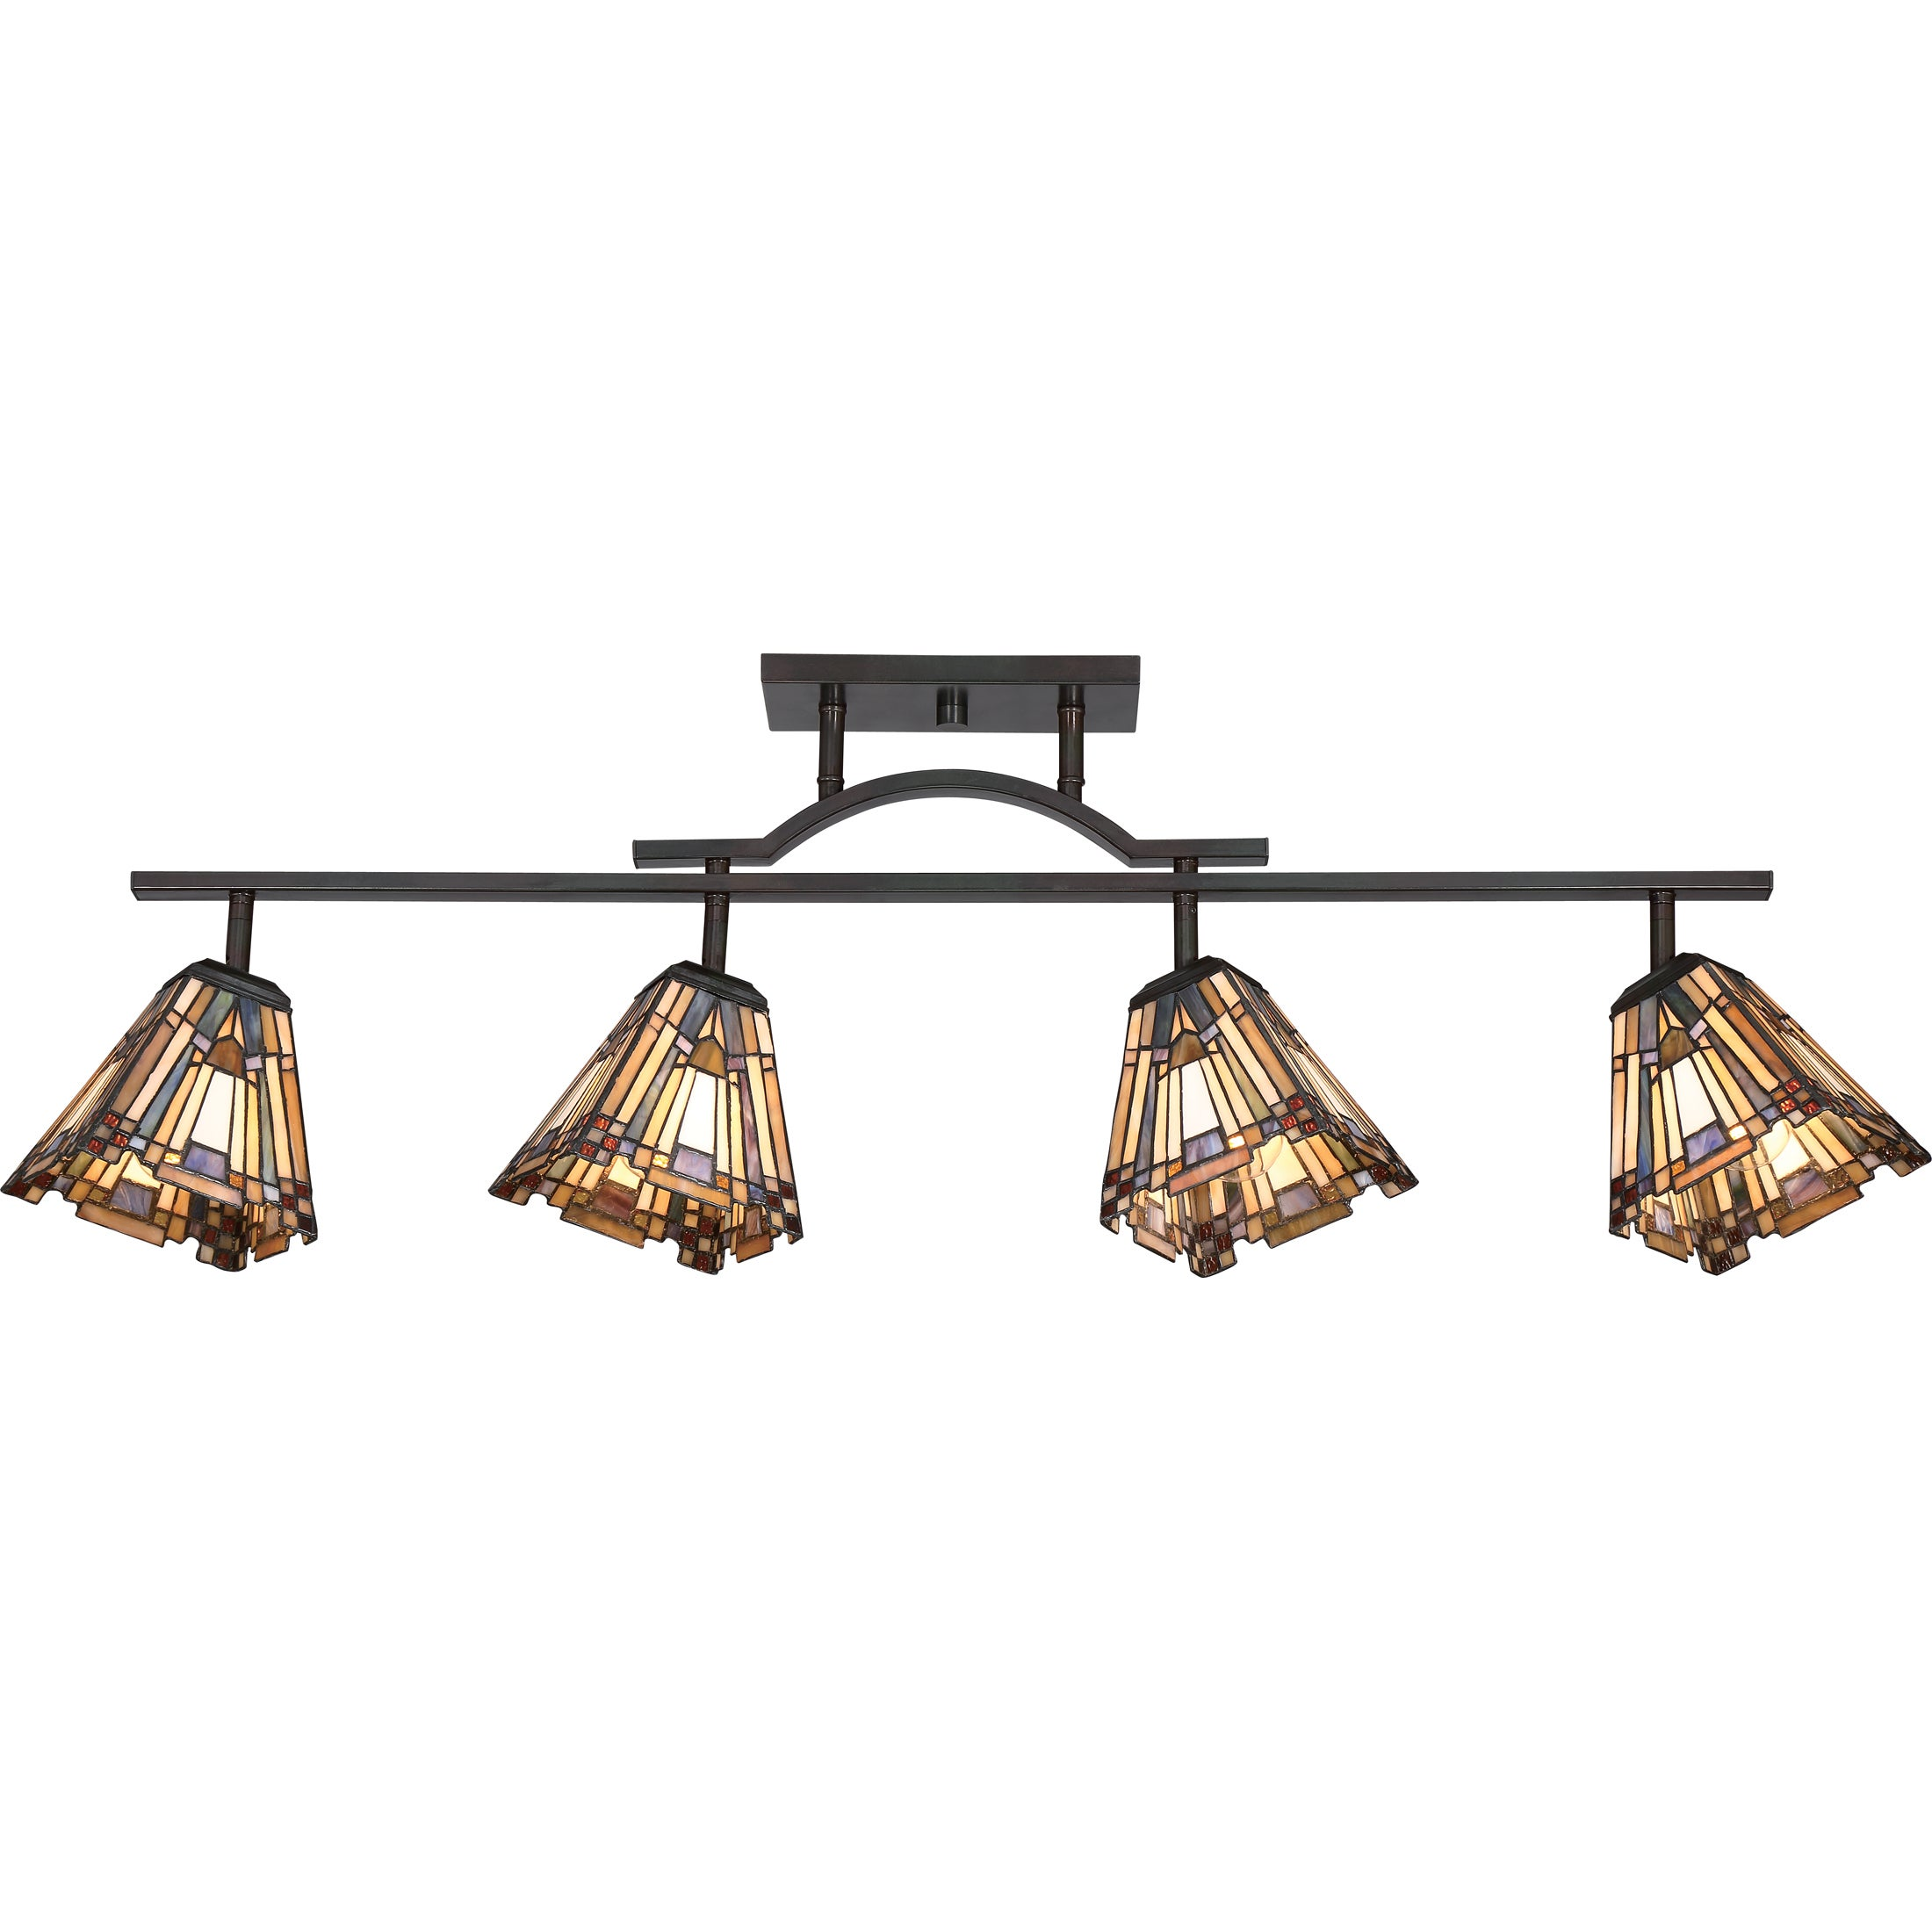 Shop Quoizel Inglenook Tiffany-style Fixed Track Light - Free Shipping Today - Overstock.com - 11804758  sc 1 st  Overstock.com & Shop Quoizel Inglenook Tiffany-style Fixed Track Light - Free ...